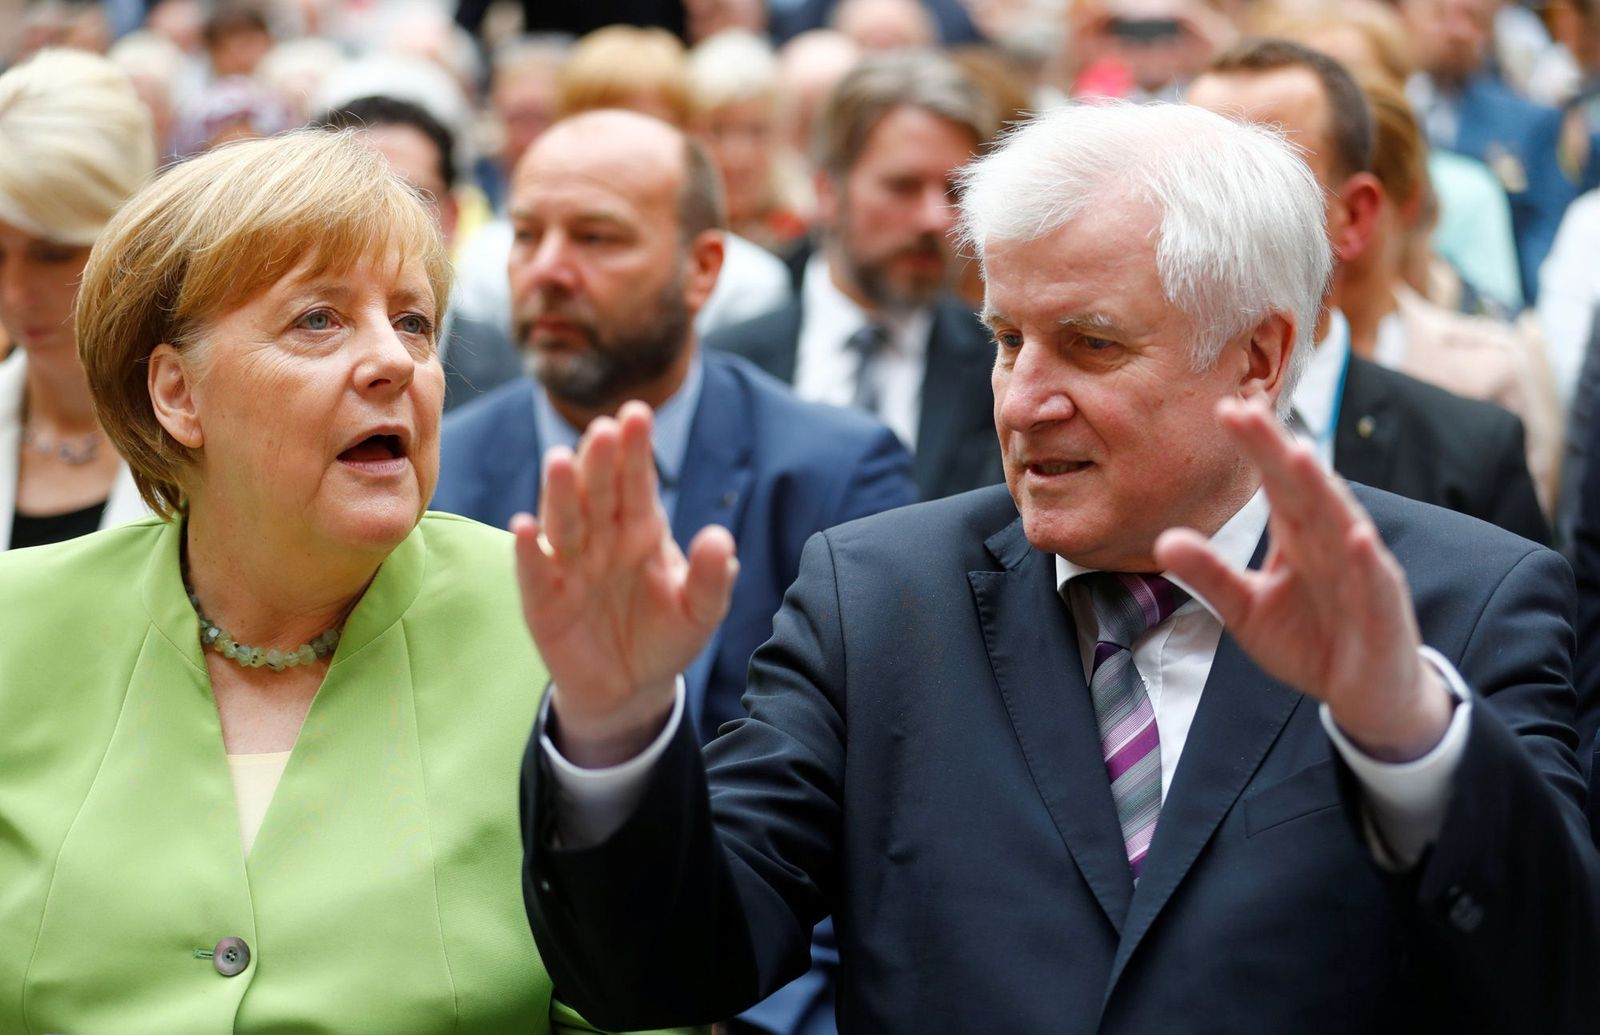 German Chancellor Merkel and German Interior minister Seehofer attend an event to commemorate victims of displacement in Berlin